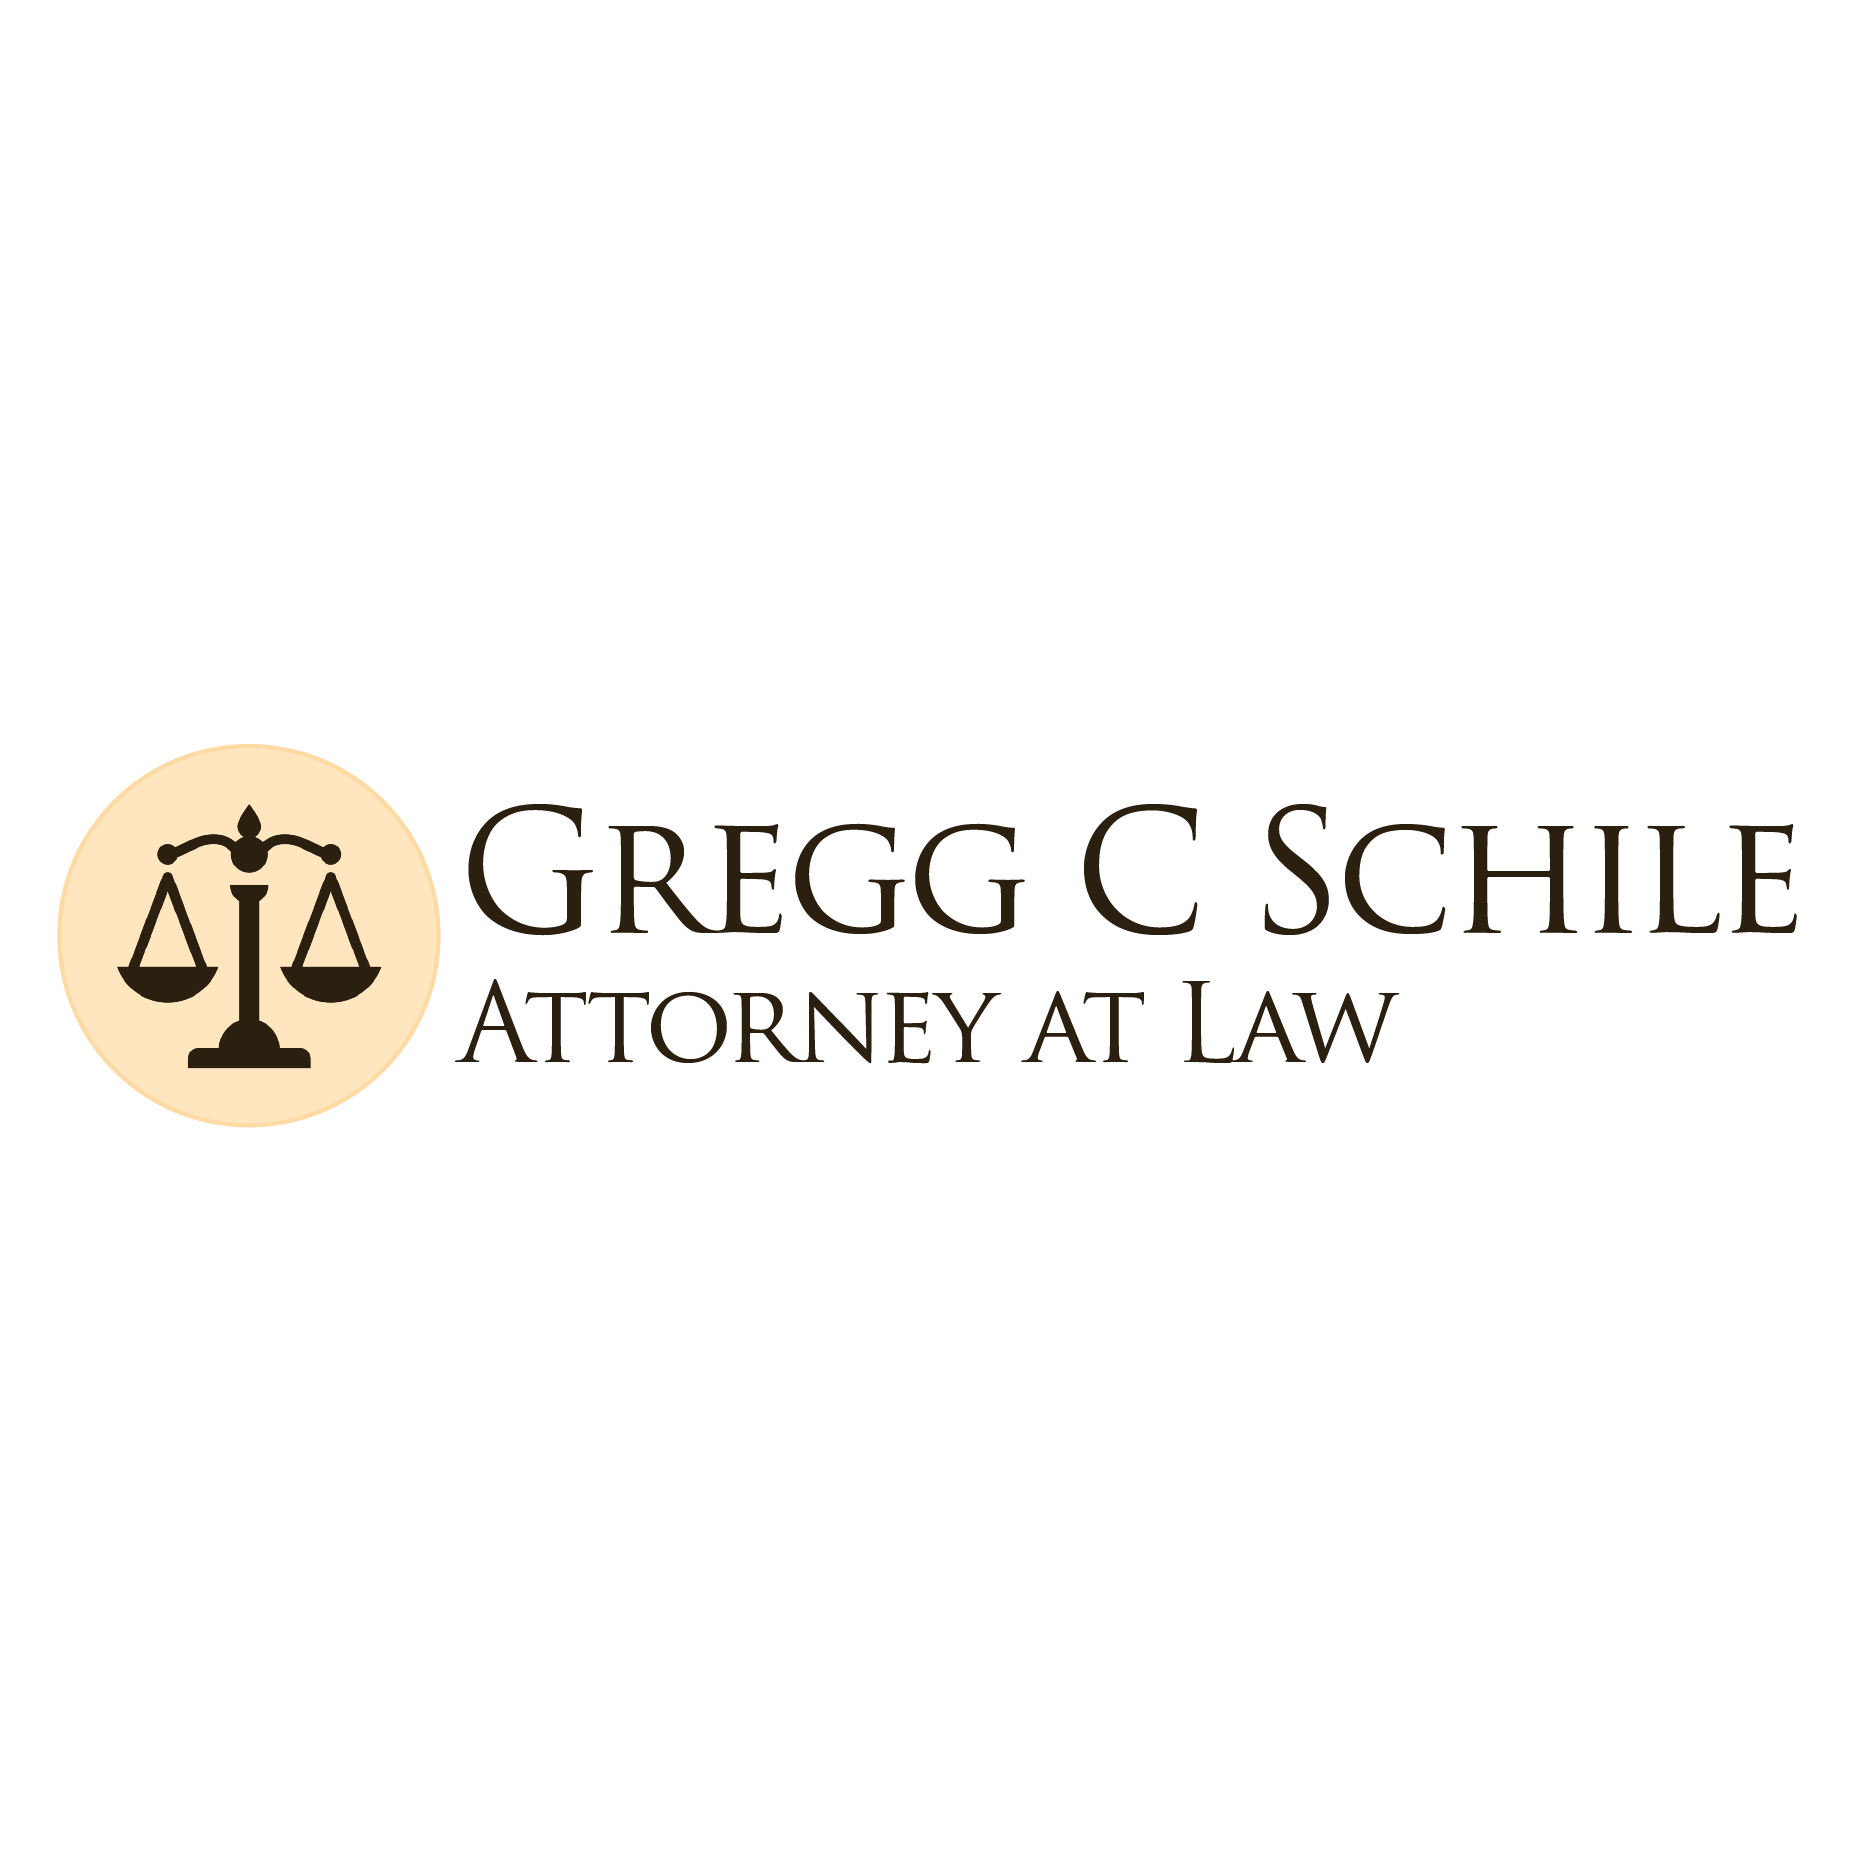 Gregg C Schile Attorney at Law